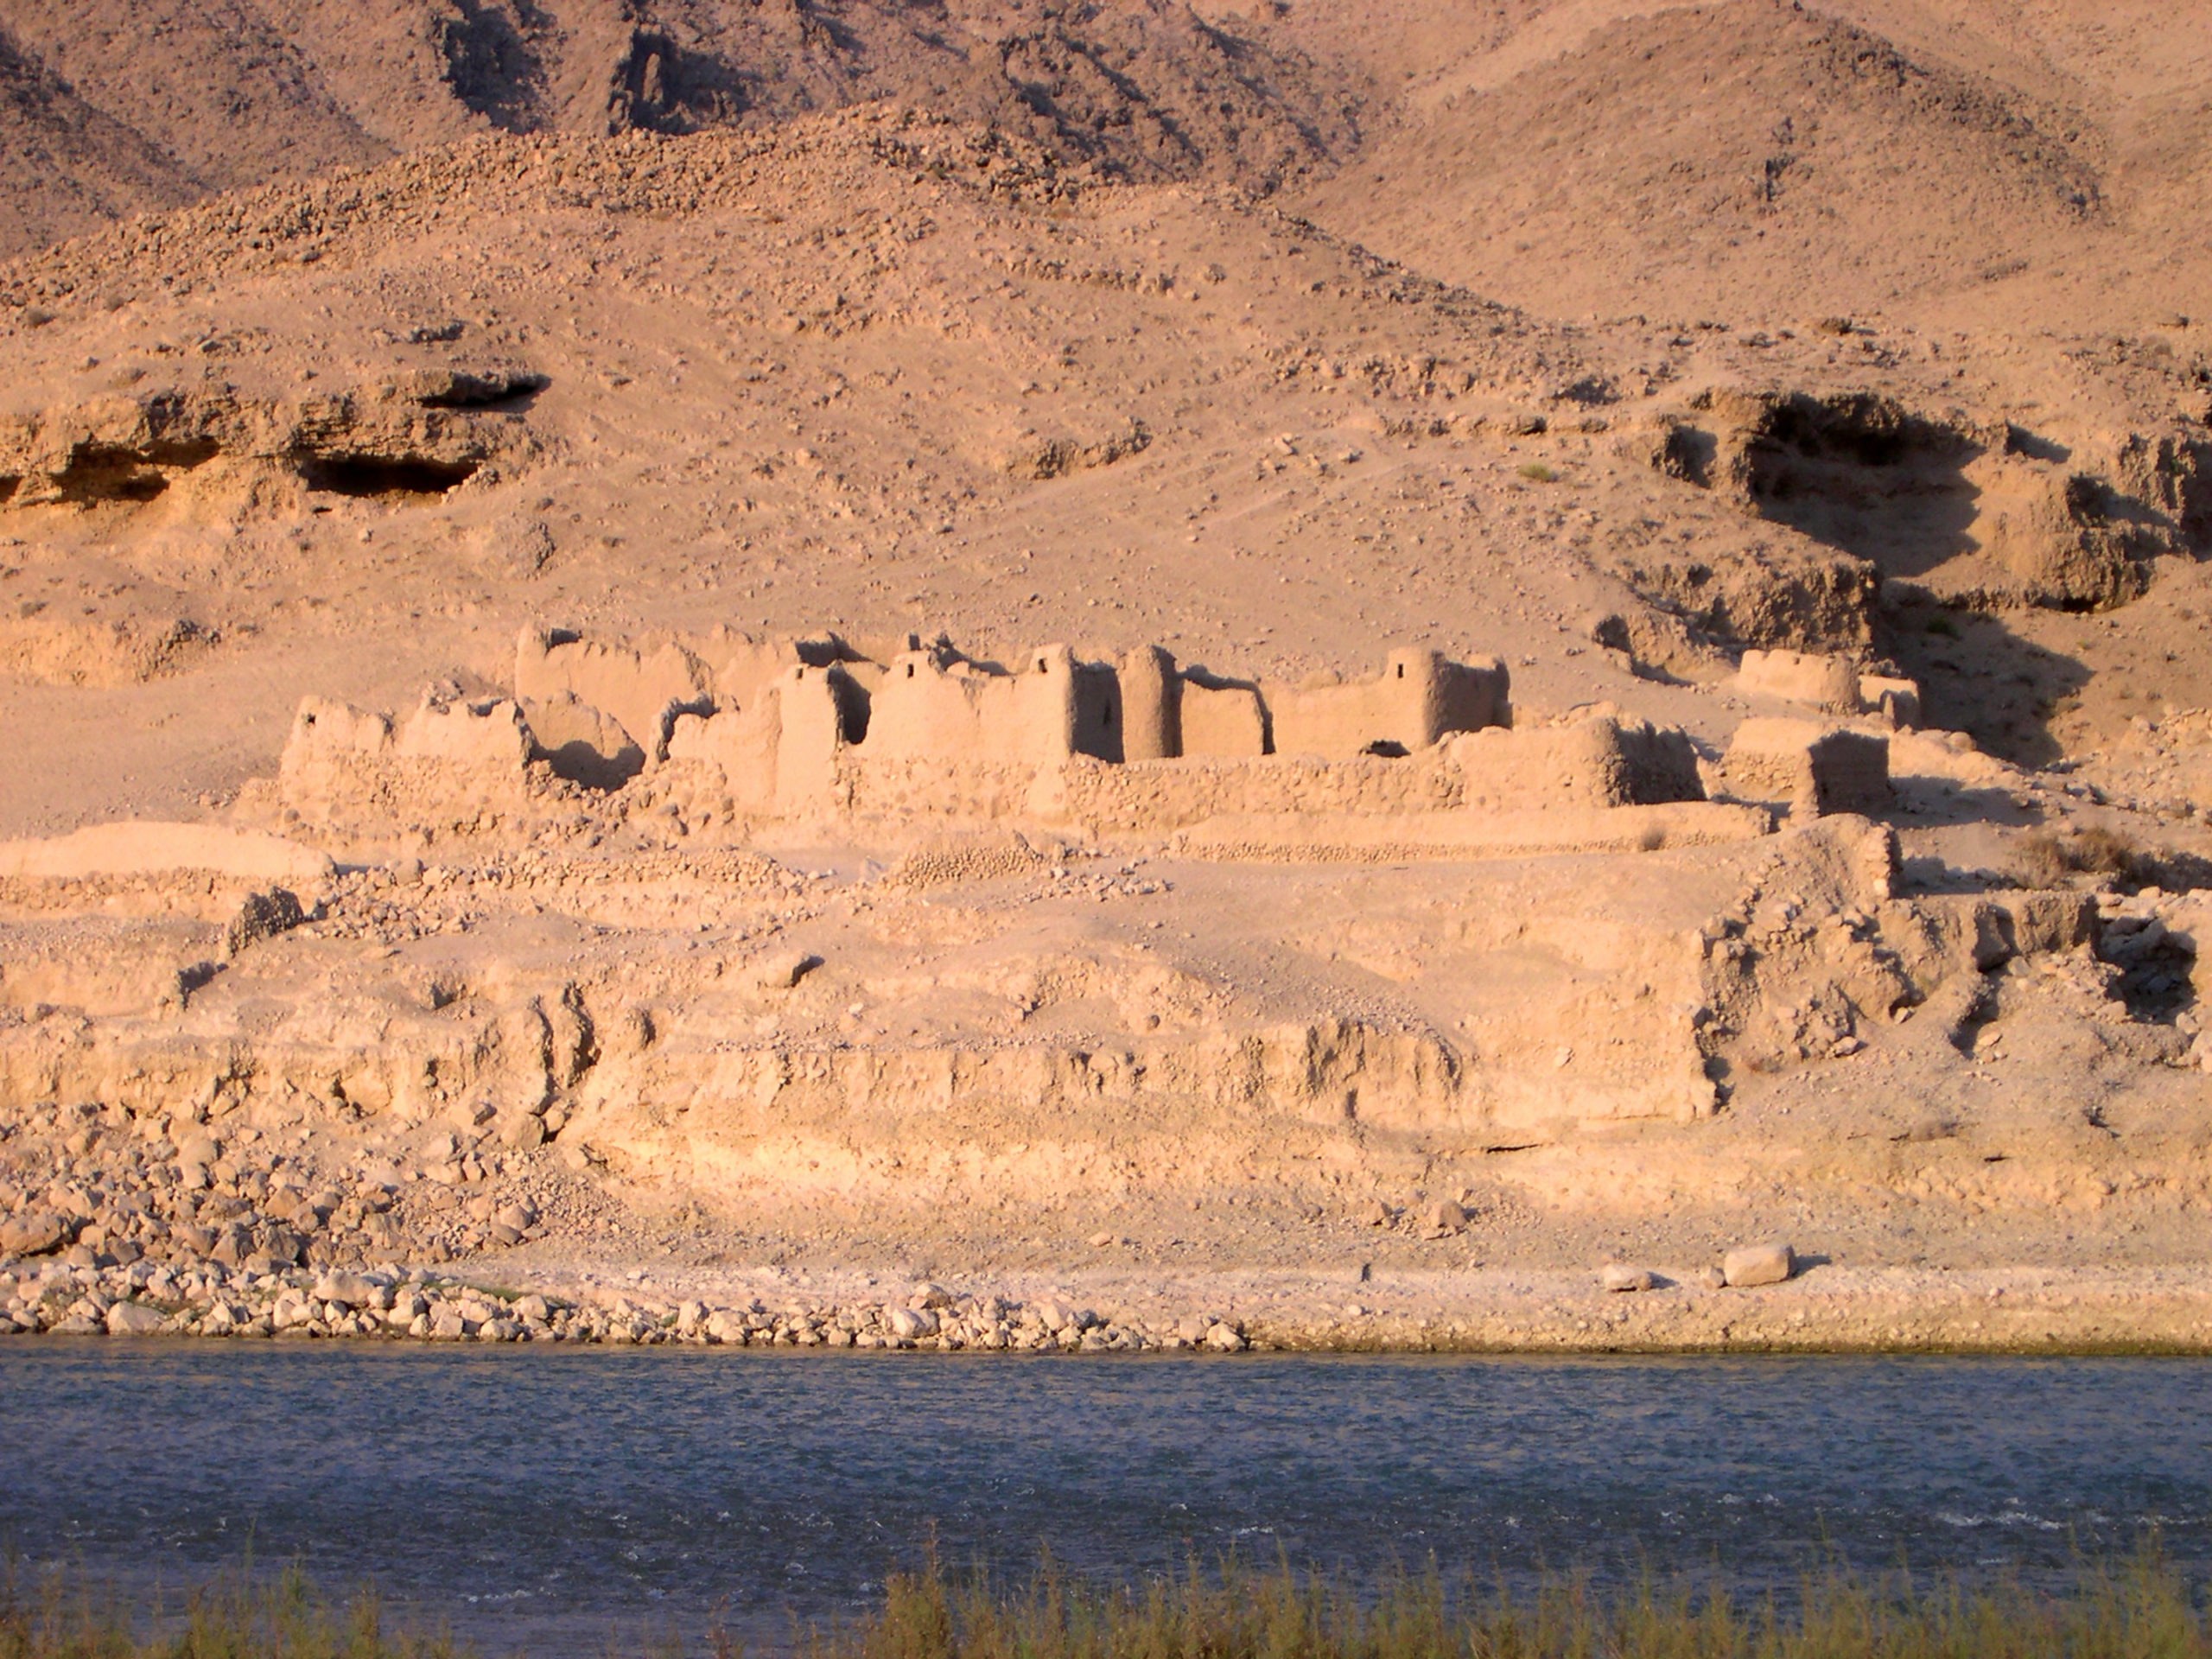 During our time in Afghanistan we beheld ancient ruins.